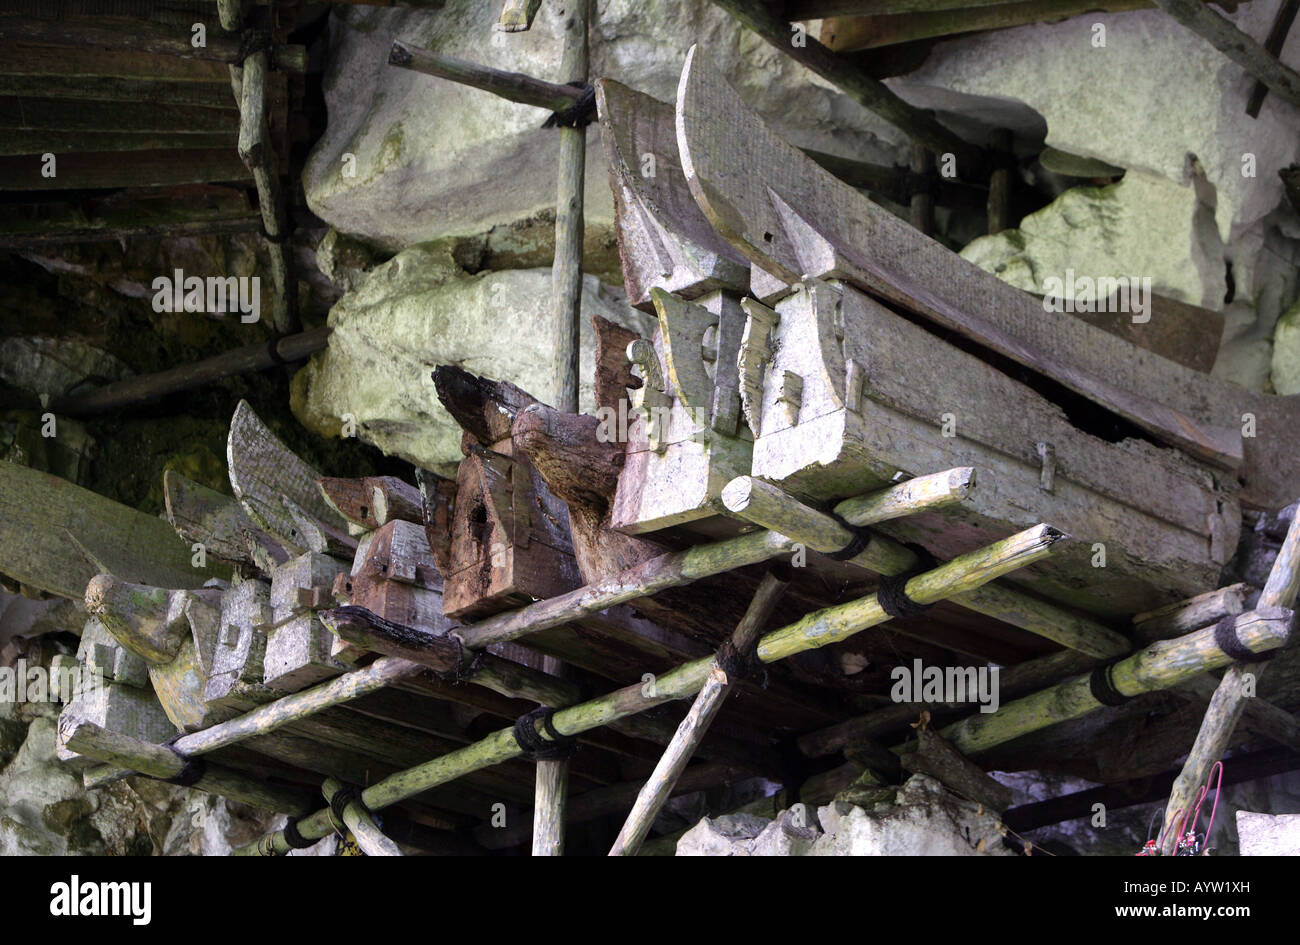 Indonesia: Coffins in a burial chamber of the caves graves in Londa, Sulawesi Island Stock Photo